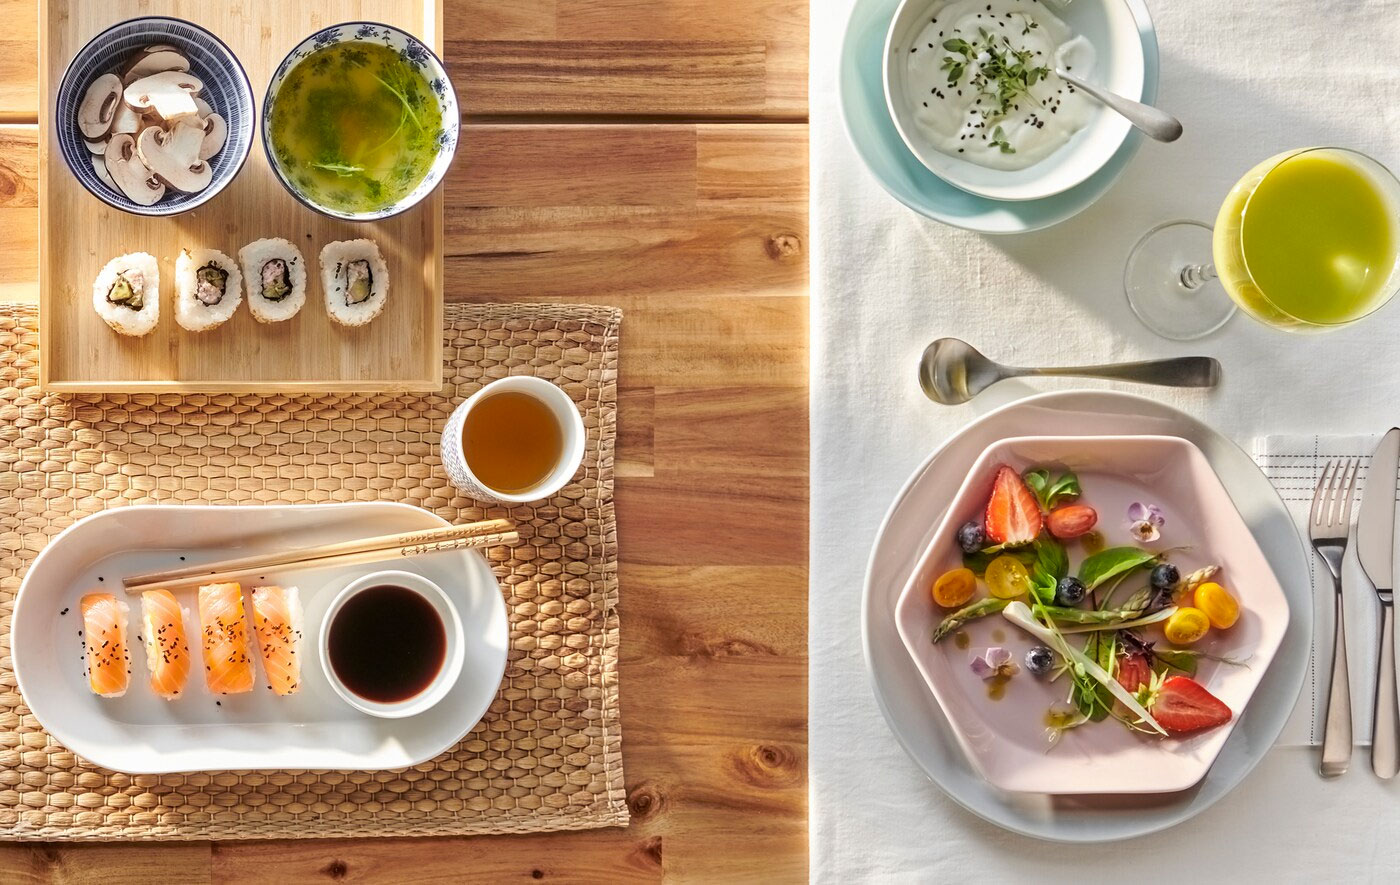 Ideas that make every meal special